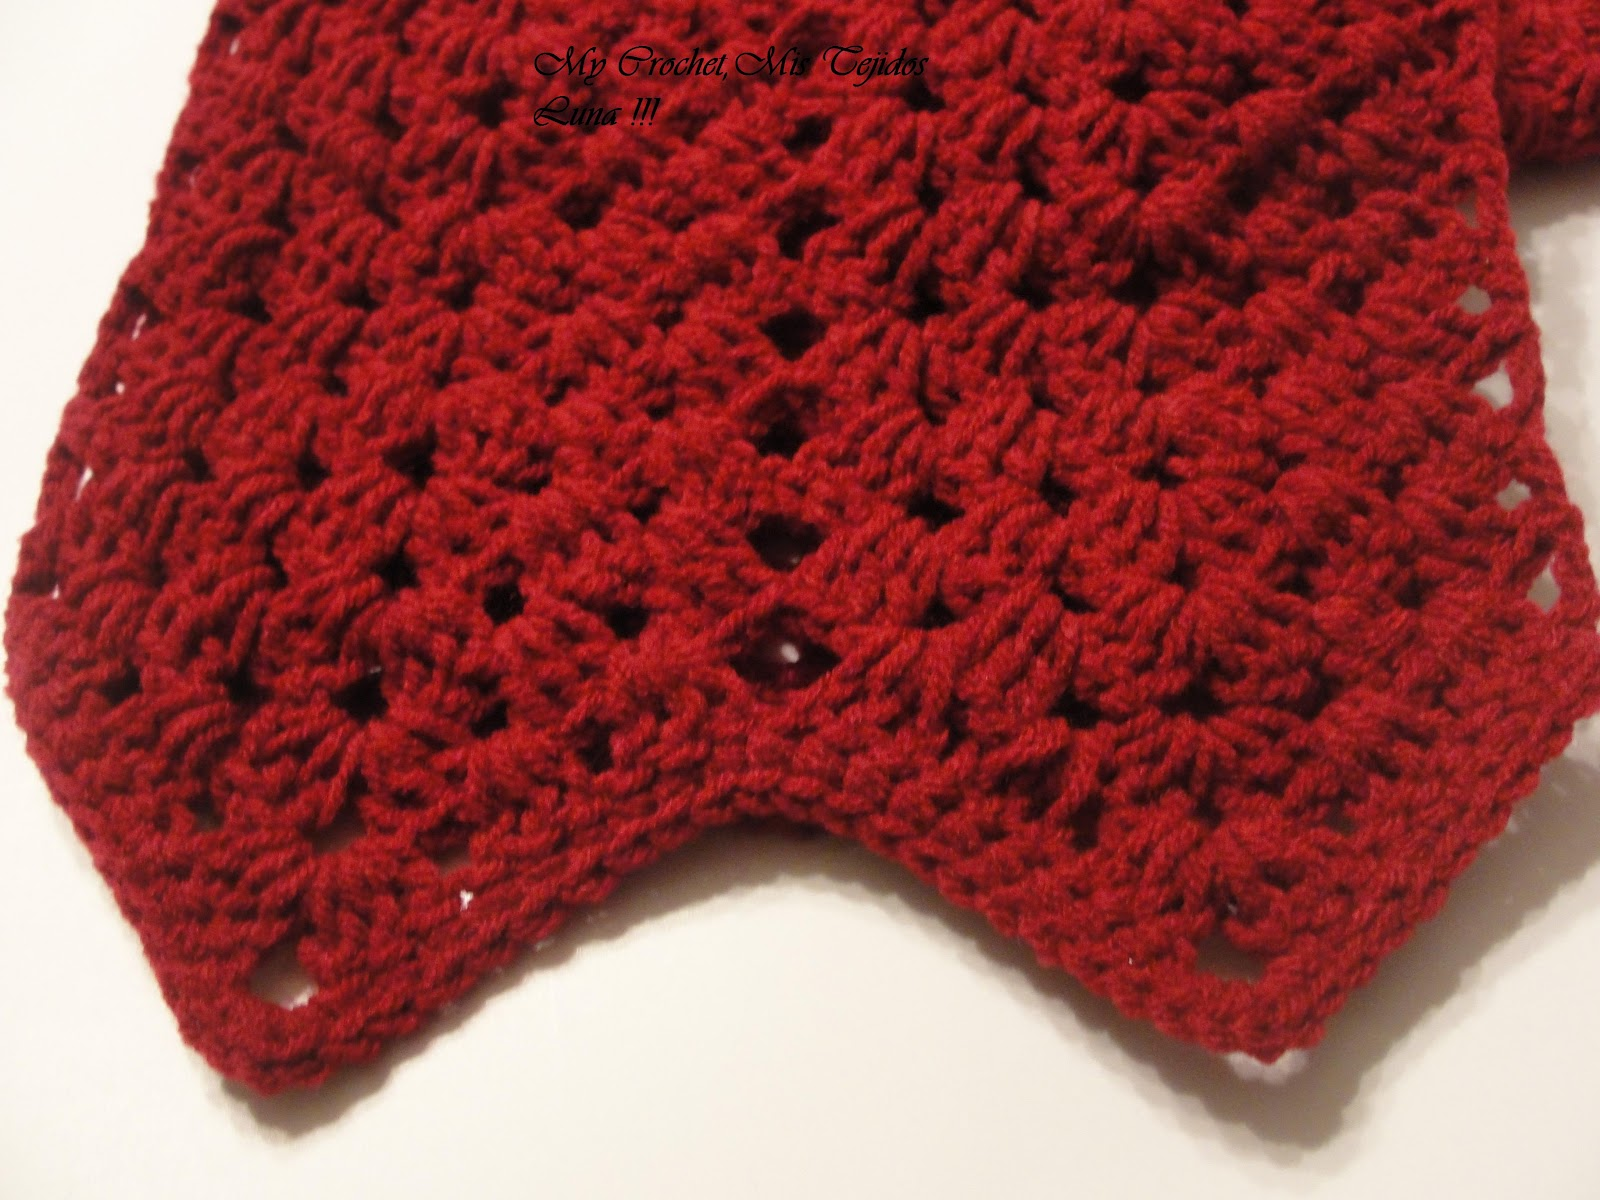 Crochet Stitches Granny Ripple : My Crochet , Mis Tejidos by Luna: Ripple Granny Scarf is Done ...